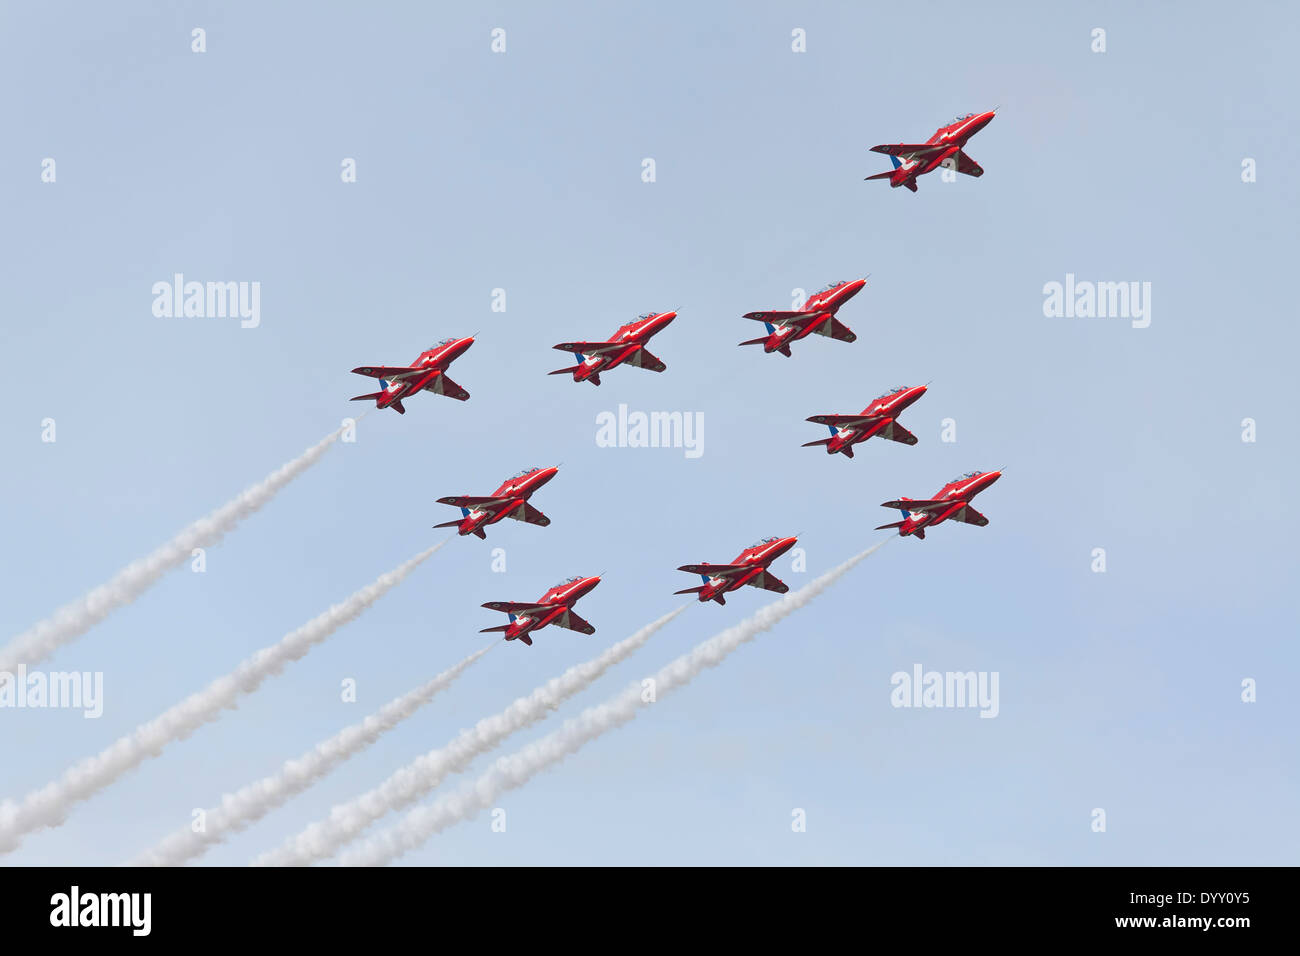 Red Arrows in formation - Stock Image